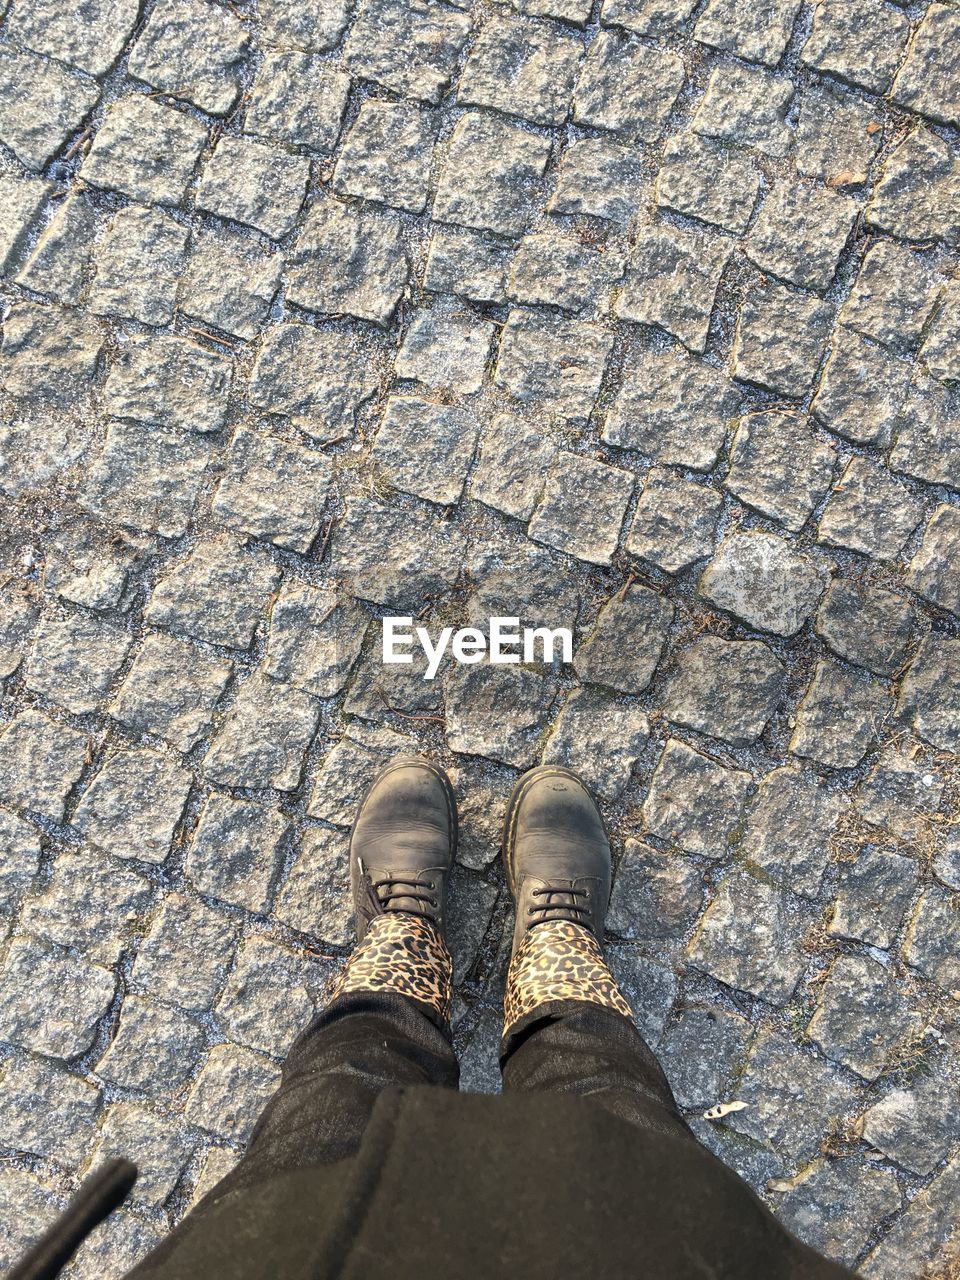 low section, human leg, shoe, body part, one person, human body part, personal perspective, real people, high angle view, standing, footpath, day, street, lifestyles, cobblestone, pattern, directly above, unrecognizable person, outdoors, human foot, human limb, jeans